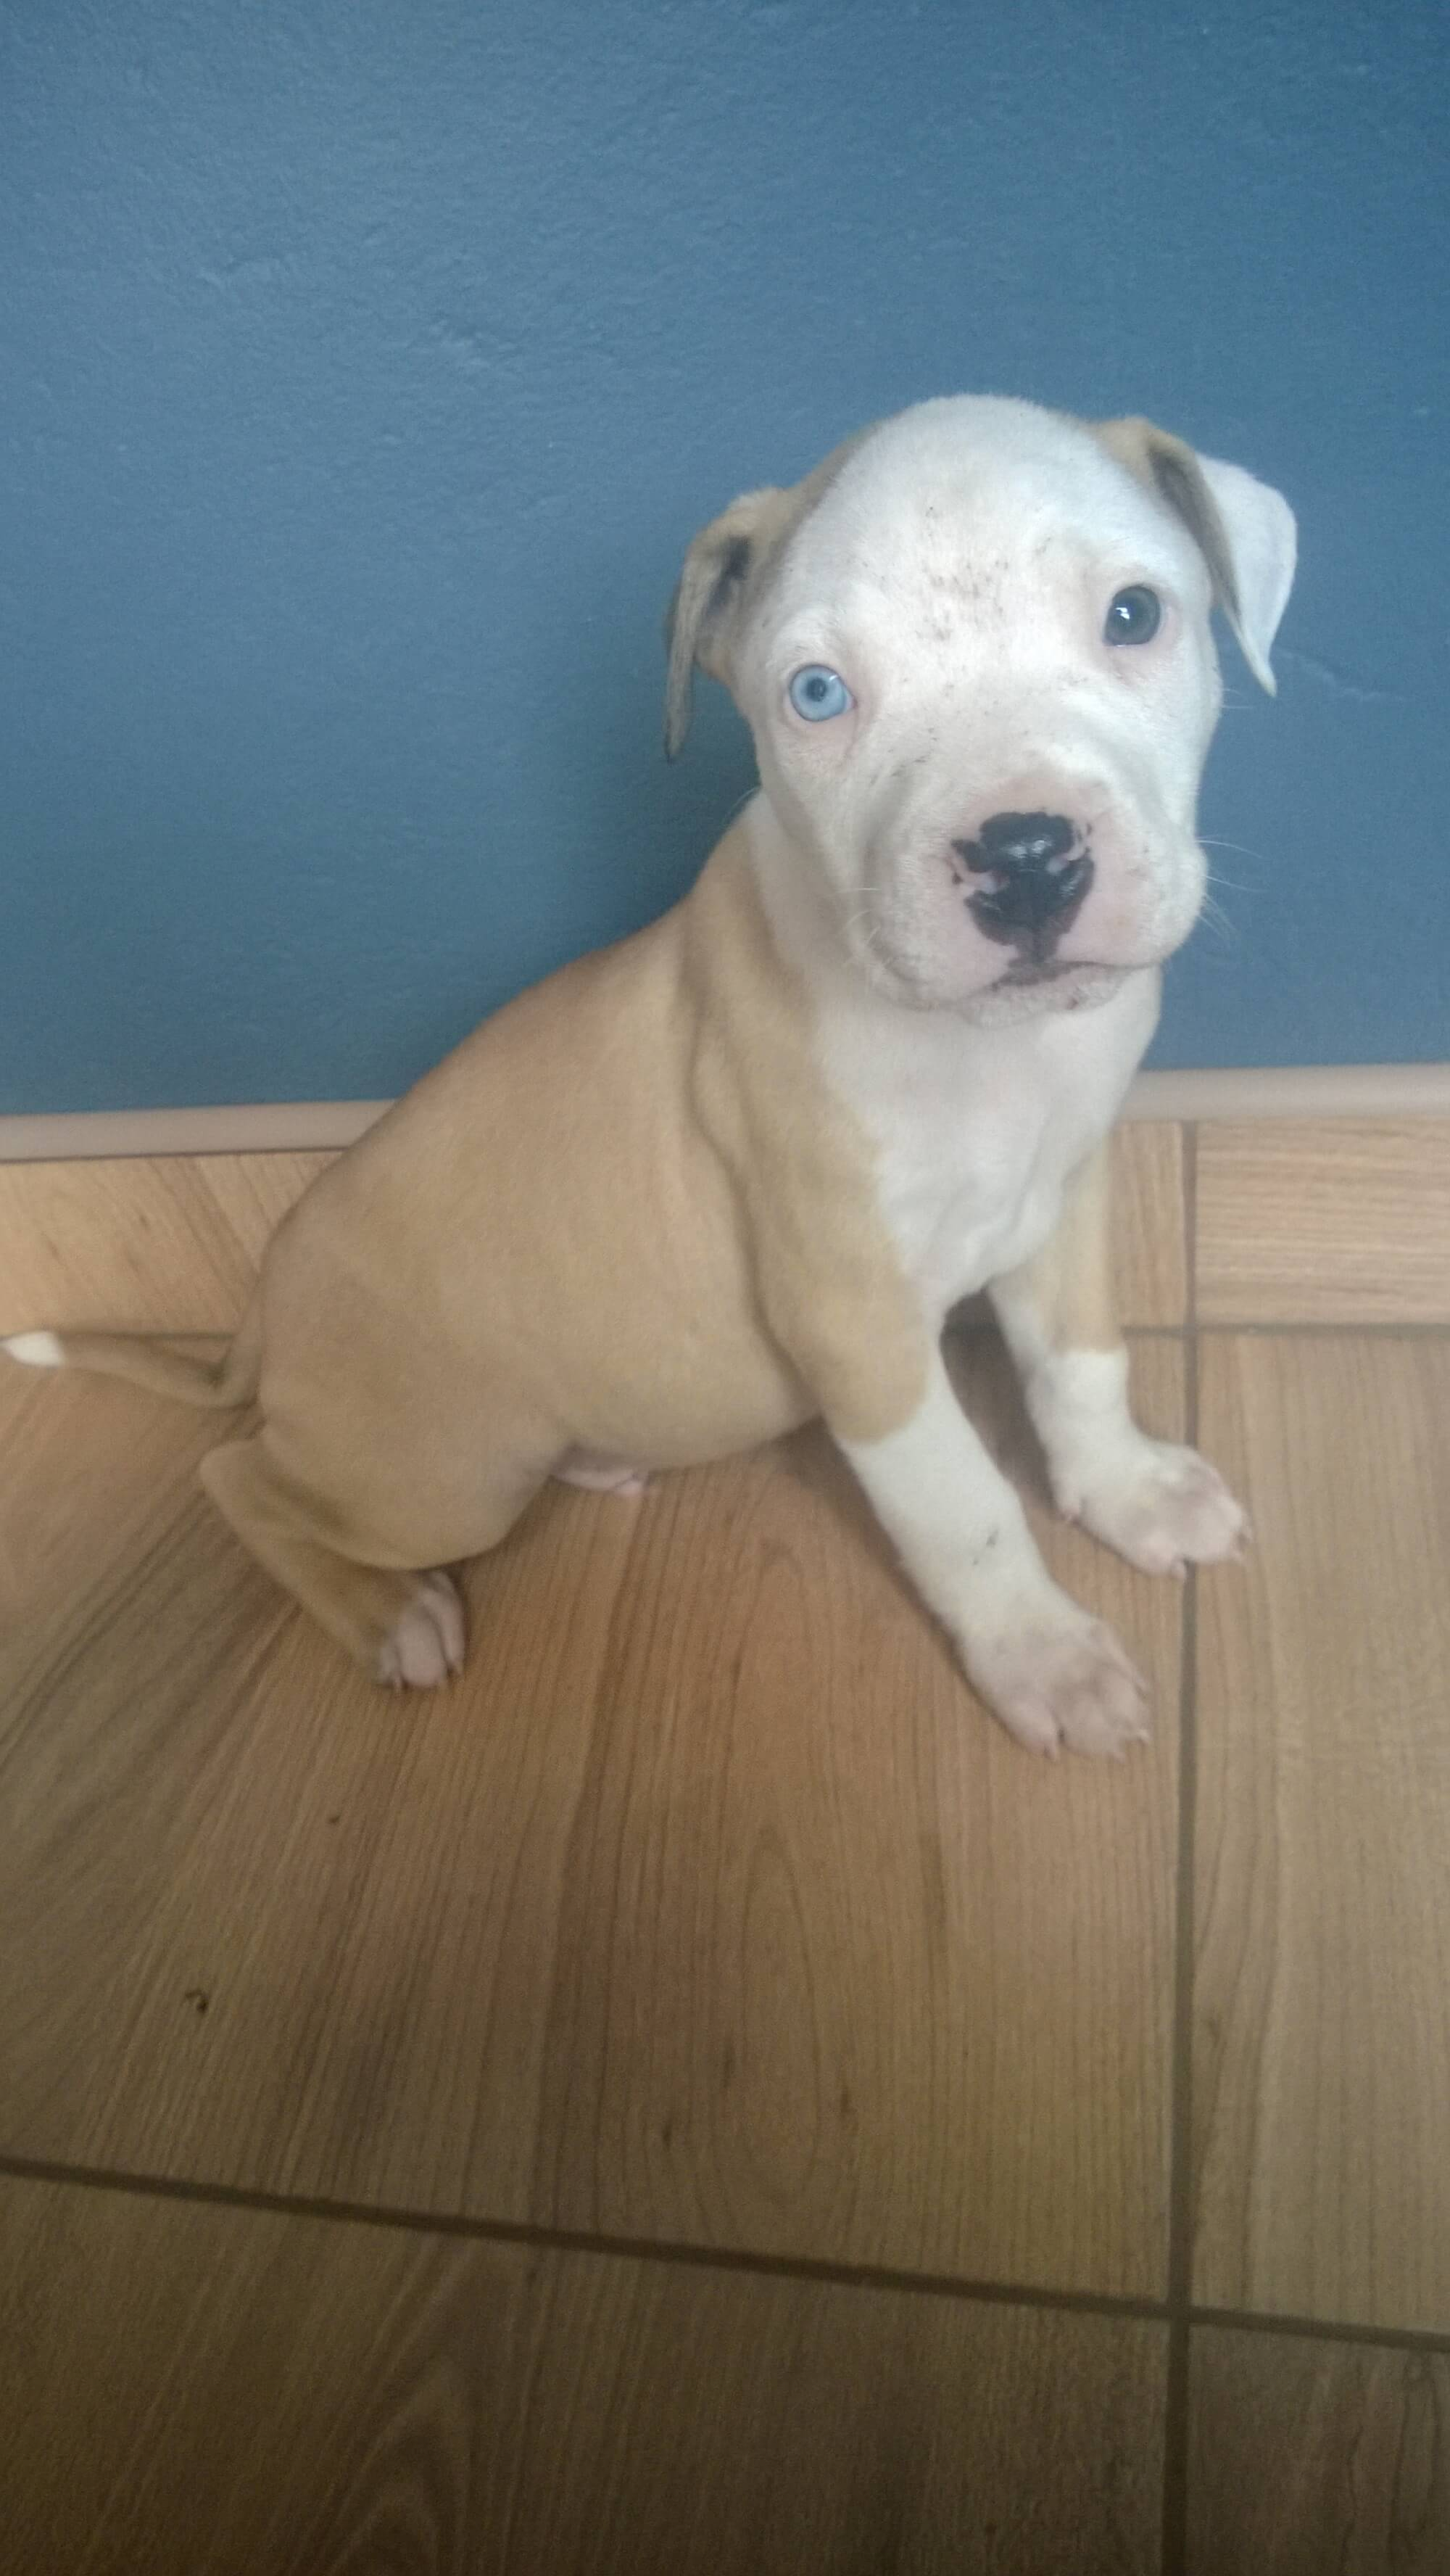 Pitbull Puppies for Sale in Pretoria by Luani du Preez